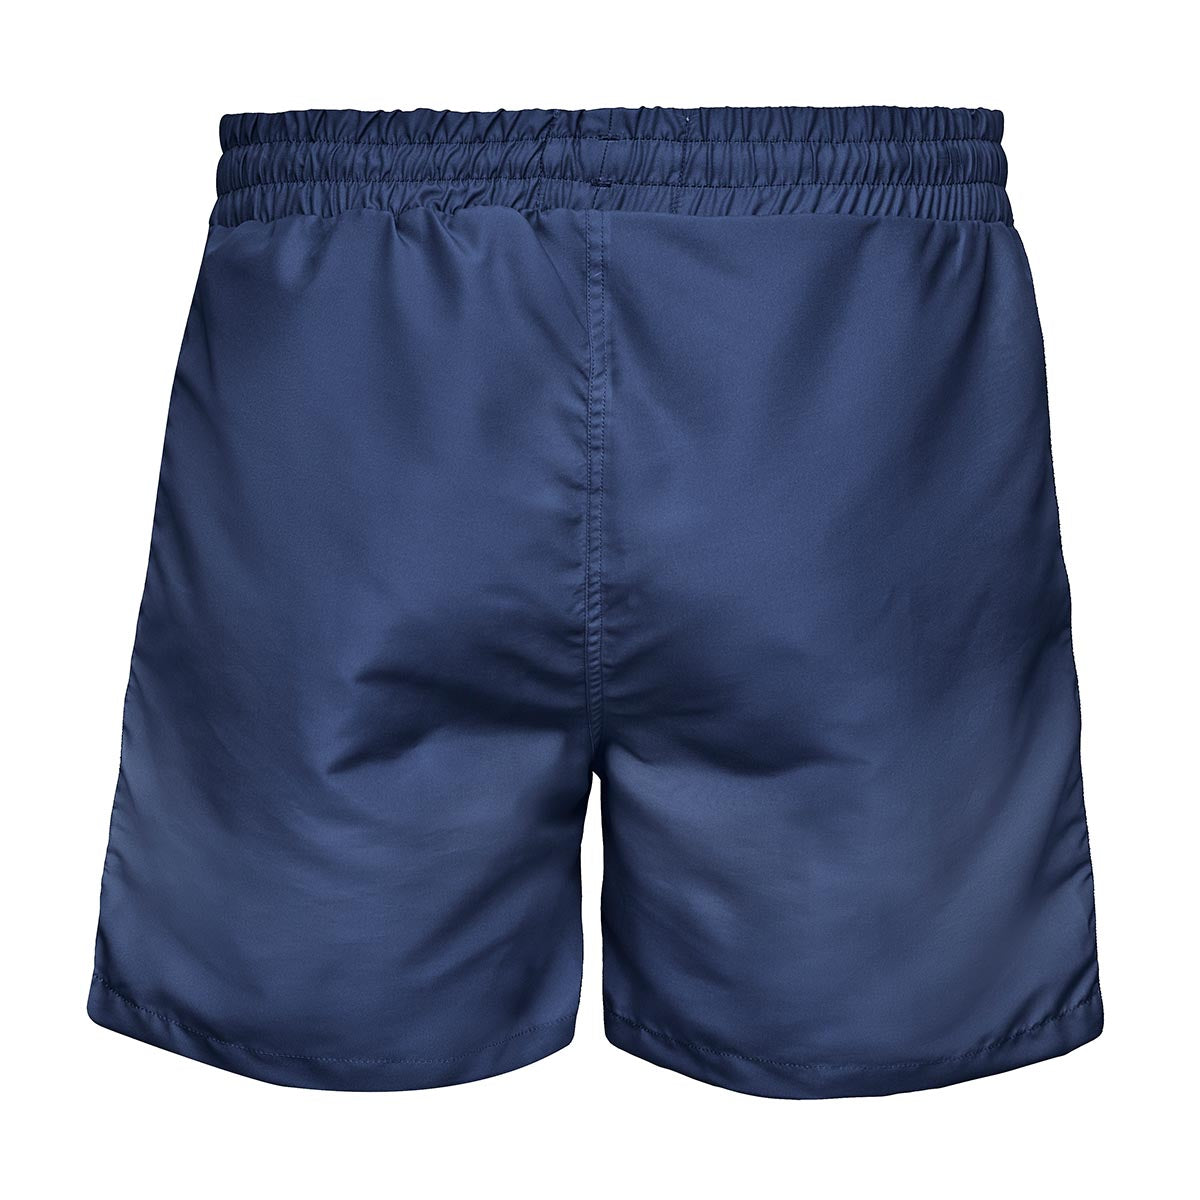 Breeze Portofino Swim Shorts (Short) - background::white,variant::Navy